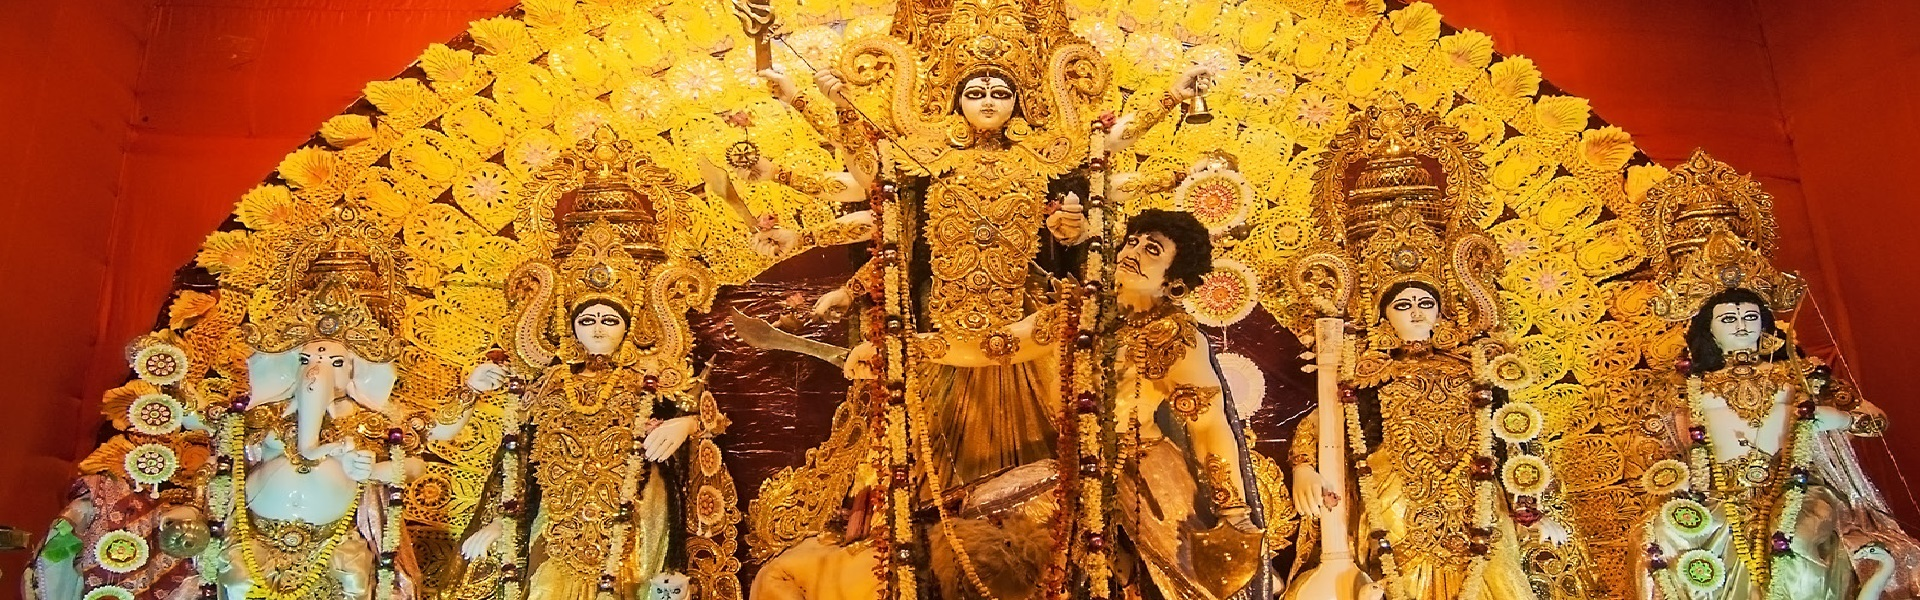 10 Significant Festivals in October in India